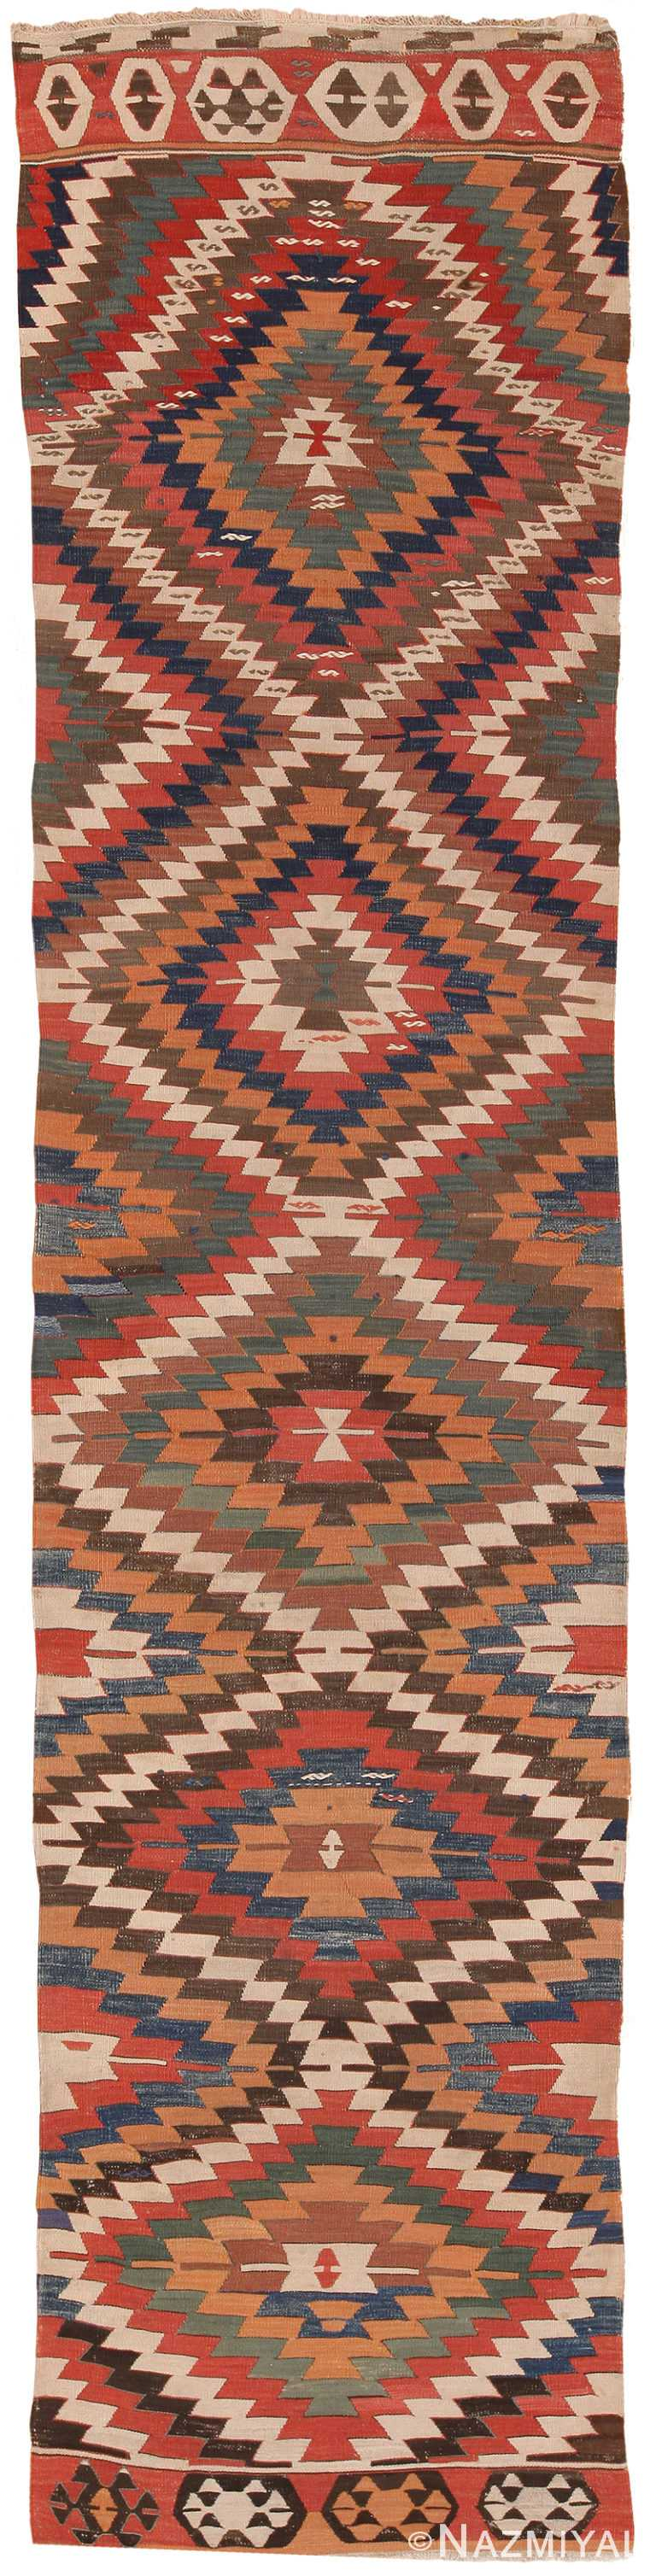 Antique Tribal Caucasian Kilim Runner Rug 70393 by Nazmiyal NYC